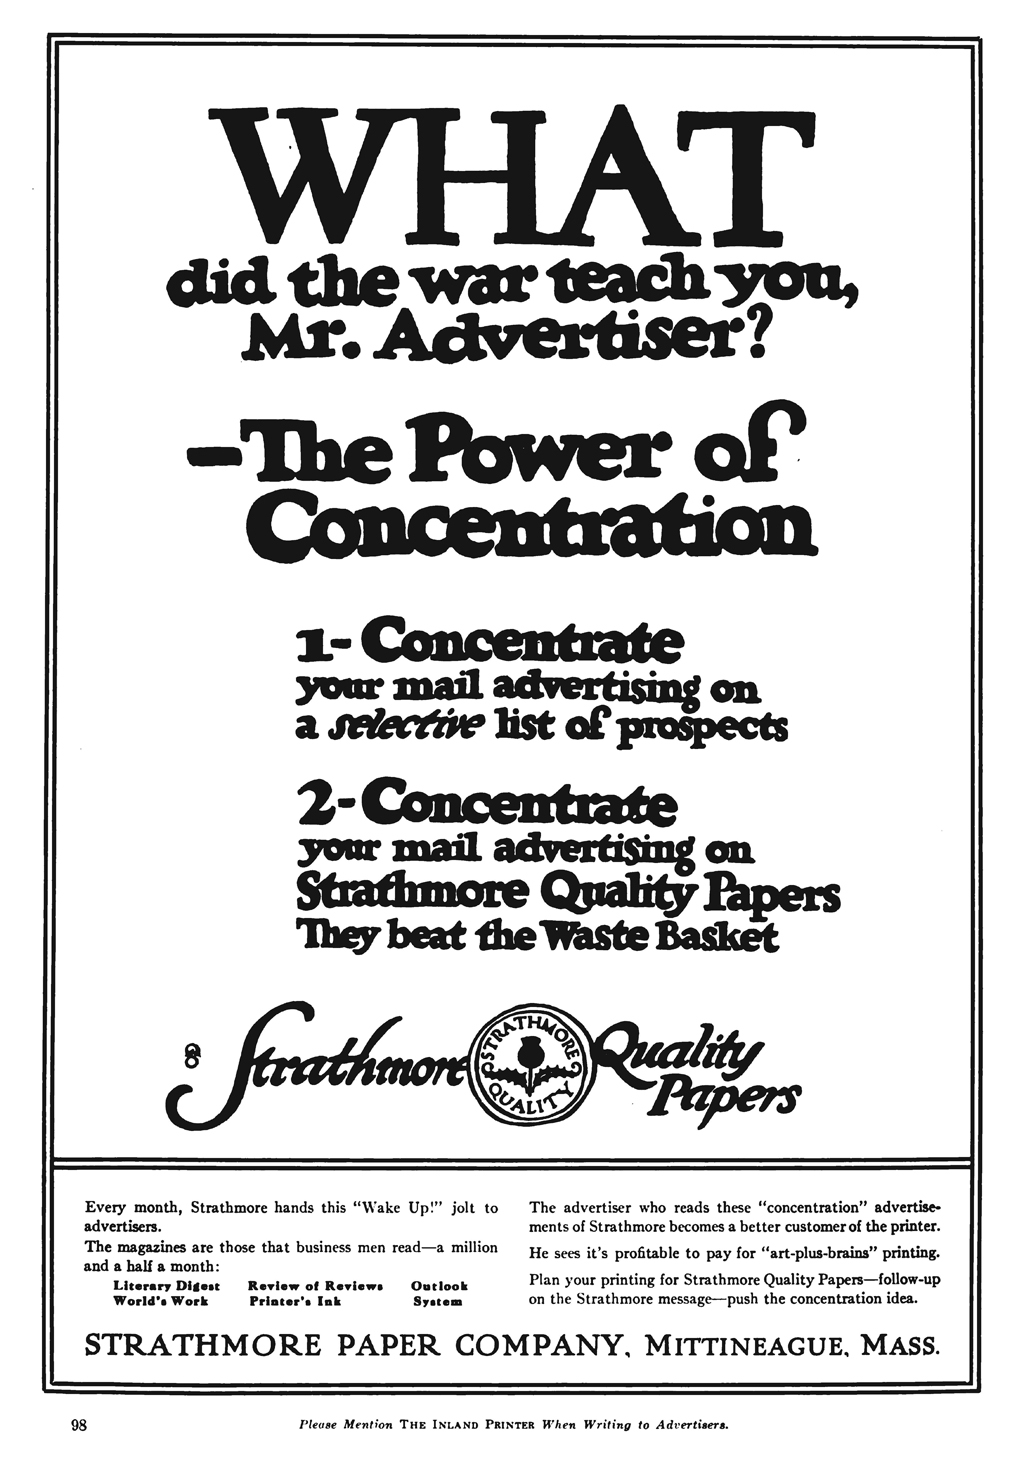 """'WHAT did the war teach you, Mr. Advertiser?"""" advertisement for Strathmore Quality Papers in The Inland Printer vol. 63, no. 1 (April 1919). Design by Fred G. Cooper."""